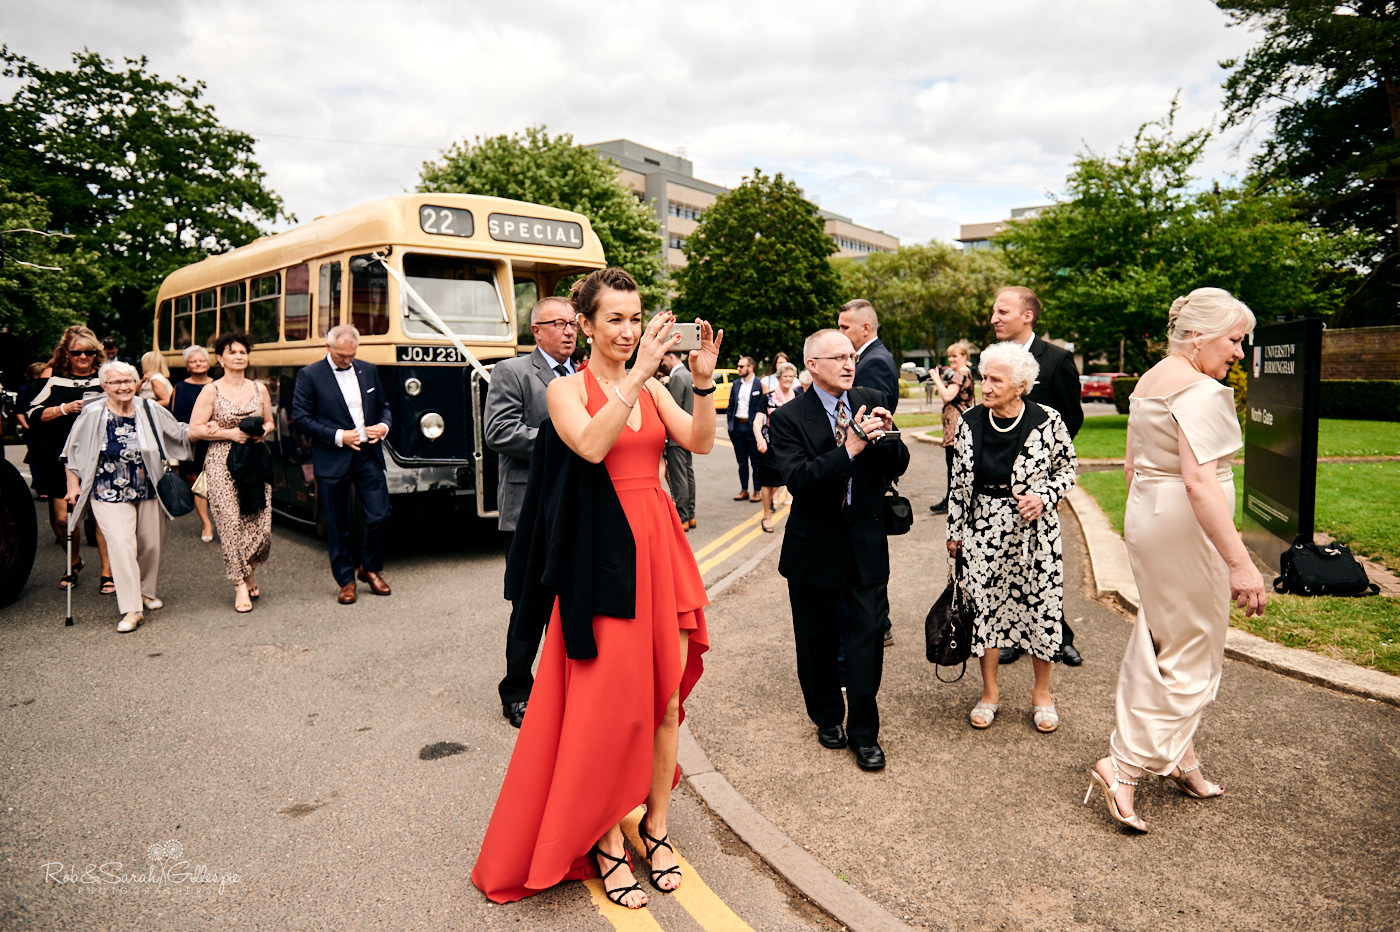 Bride, groom and wedding guests walk through Birmingham University grounds